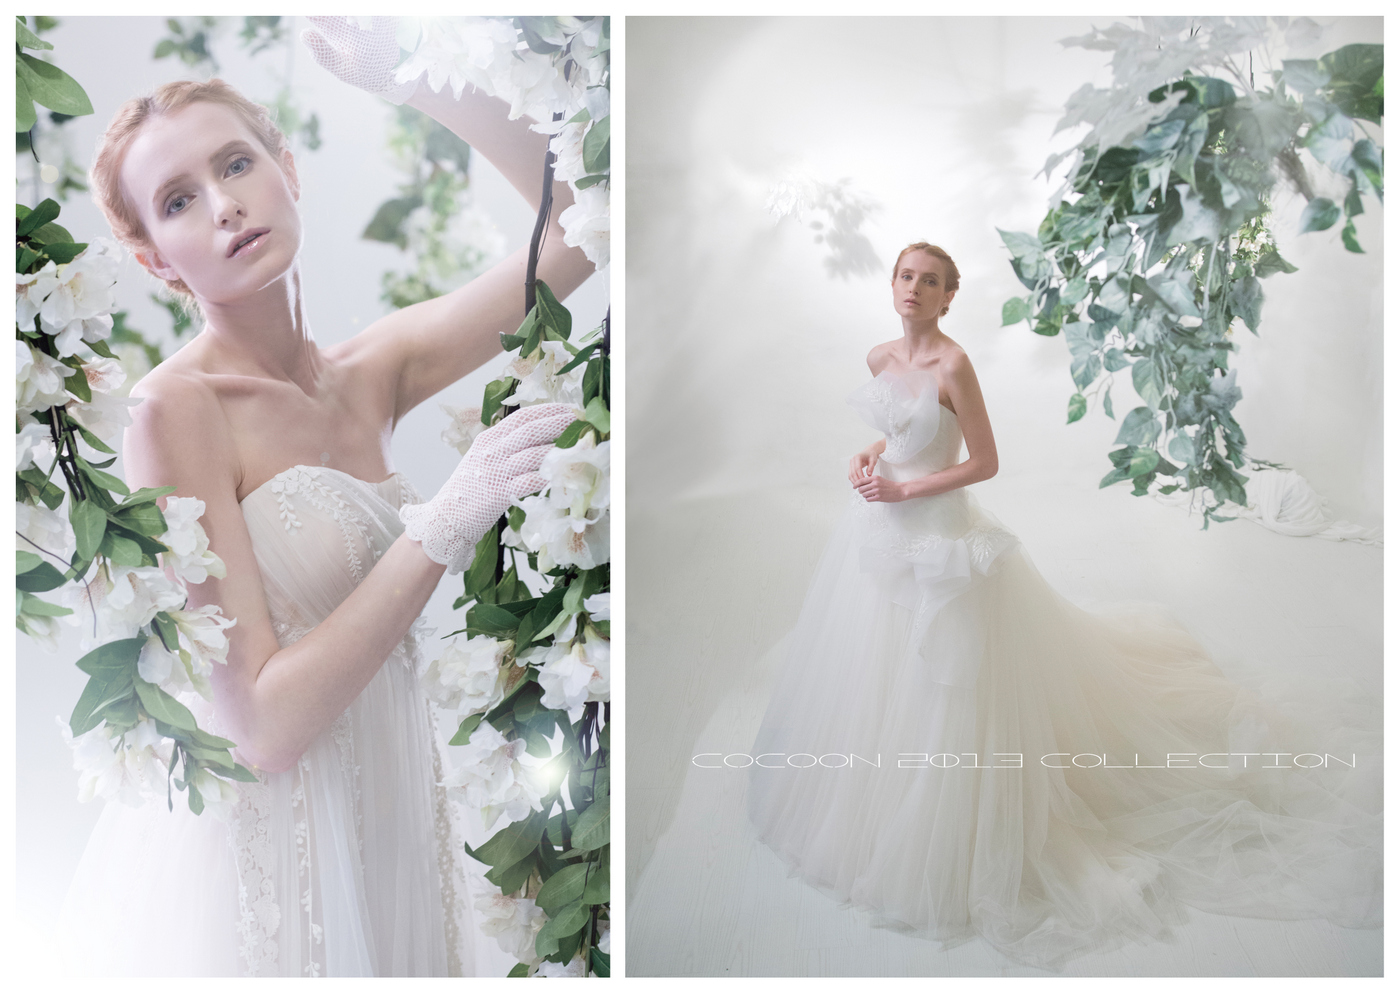 Saja Wedding 2013 Collection: Cocoon 2013 Collection